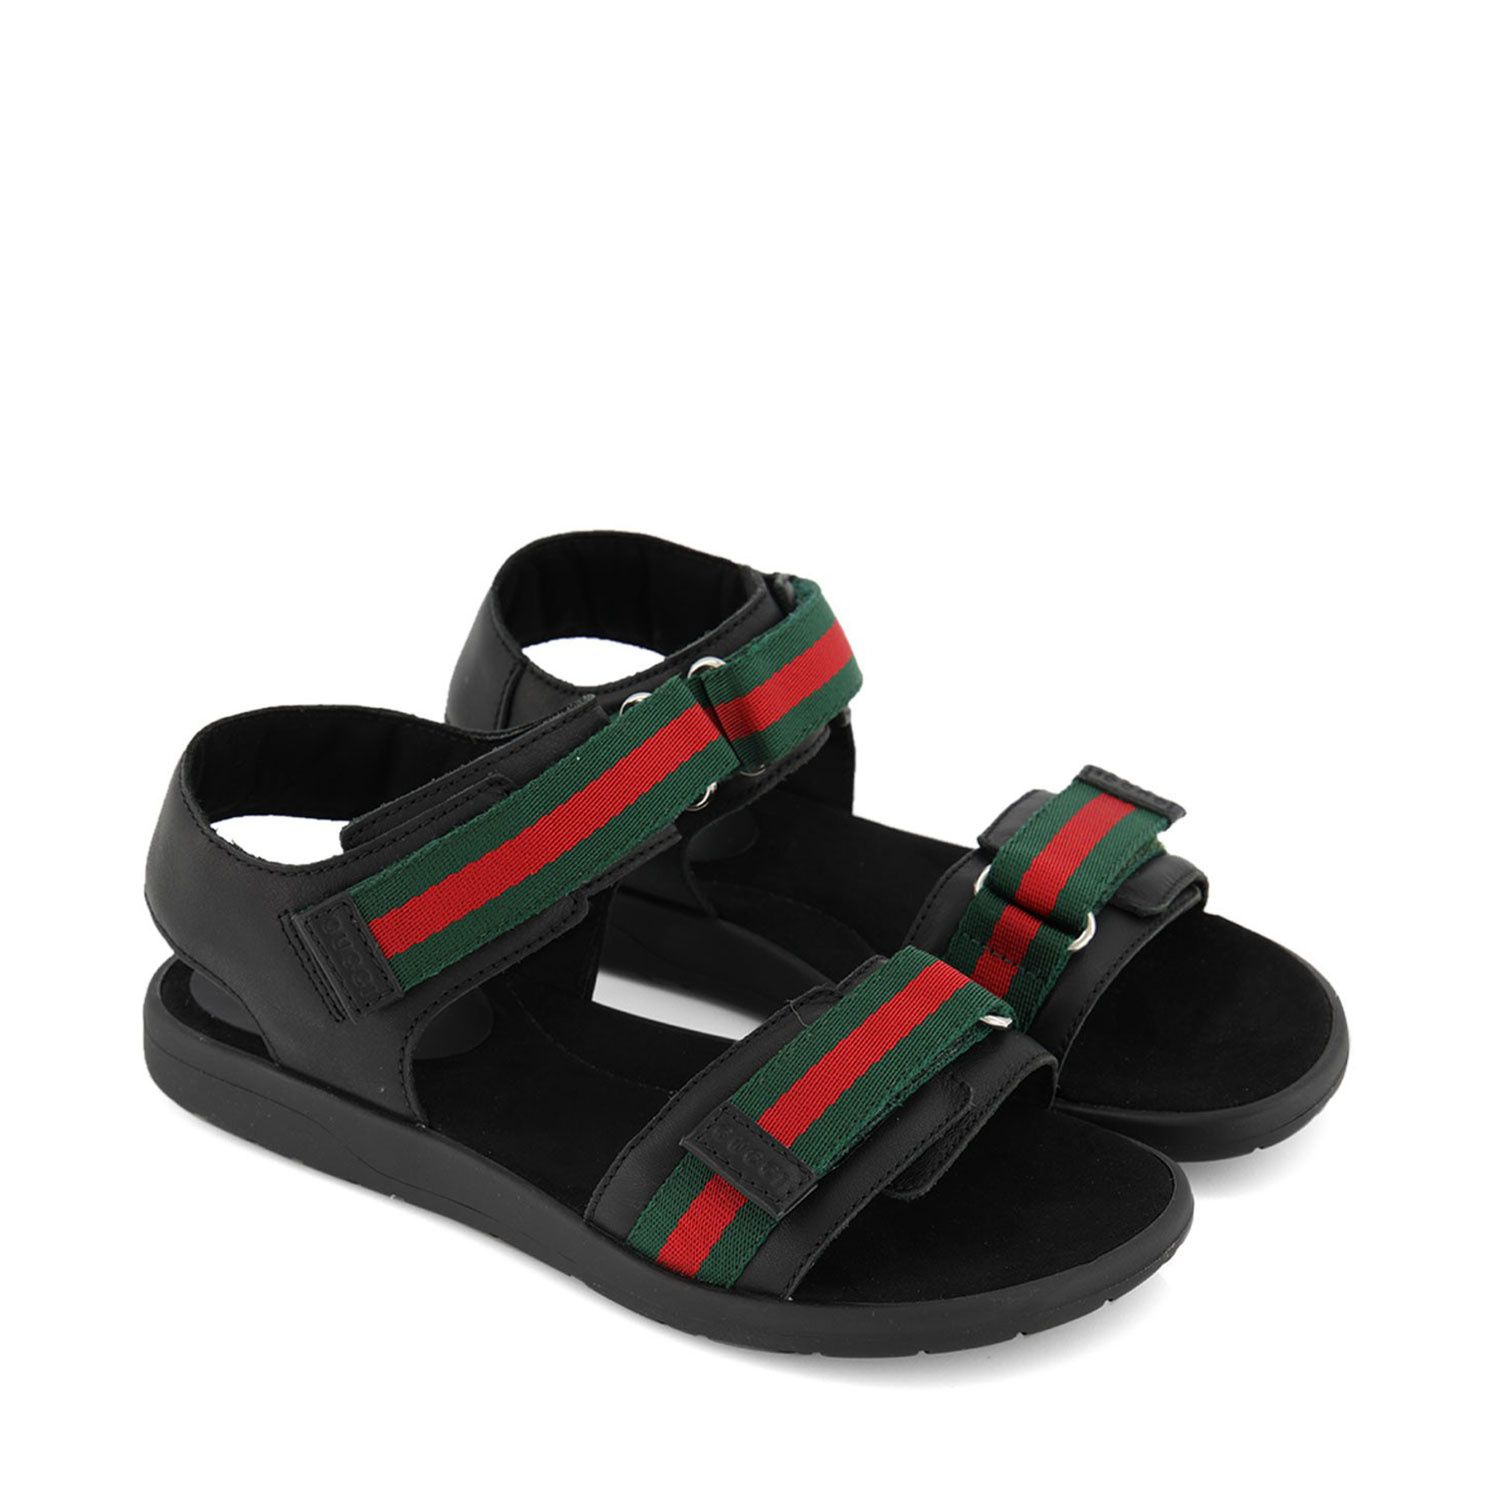 Picture of Gucci 257761 kids sandals black